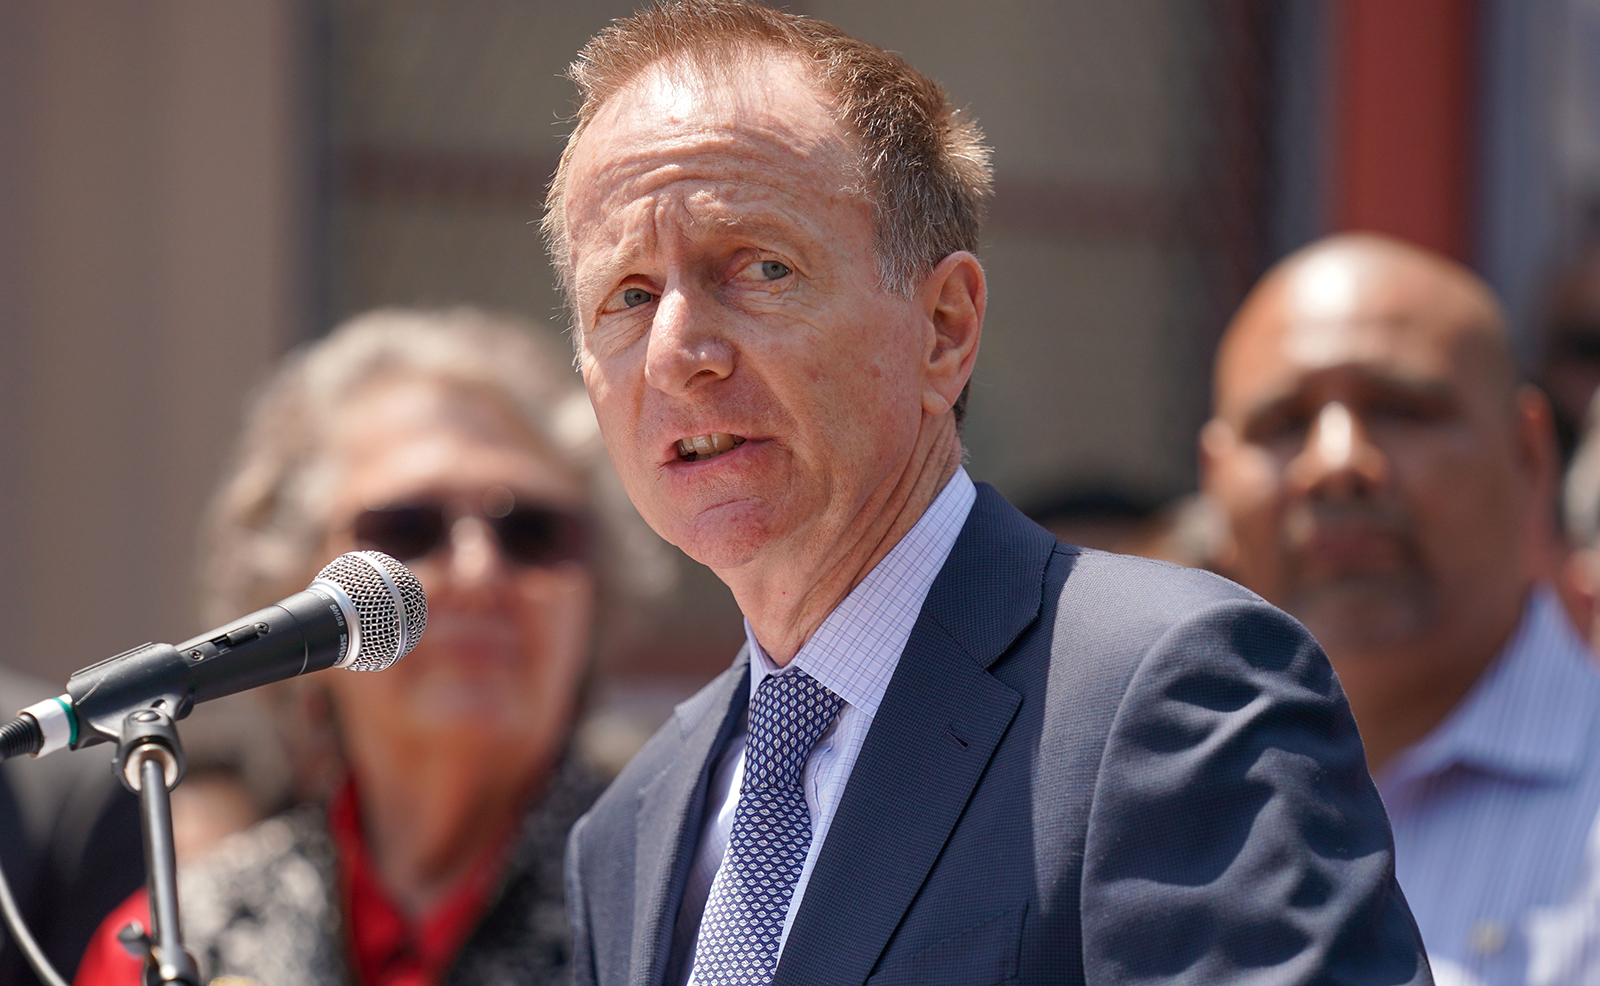 LAUSD Superintendent Austin Beutner speaks during a press conference at Western Avenue Elementary School in Los Angeles on June 5, 2019.